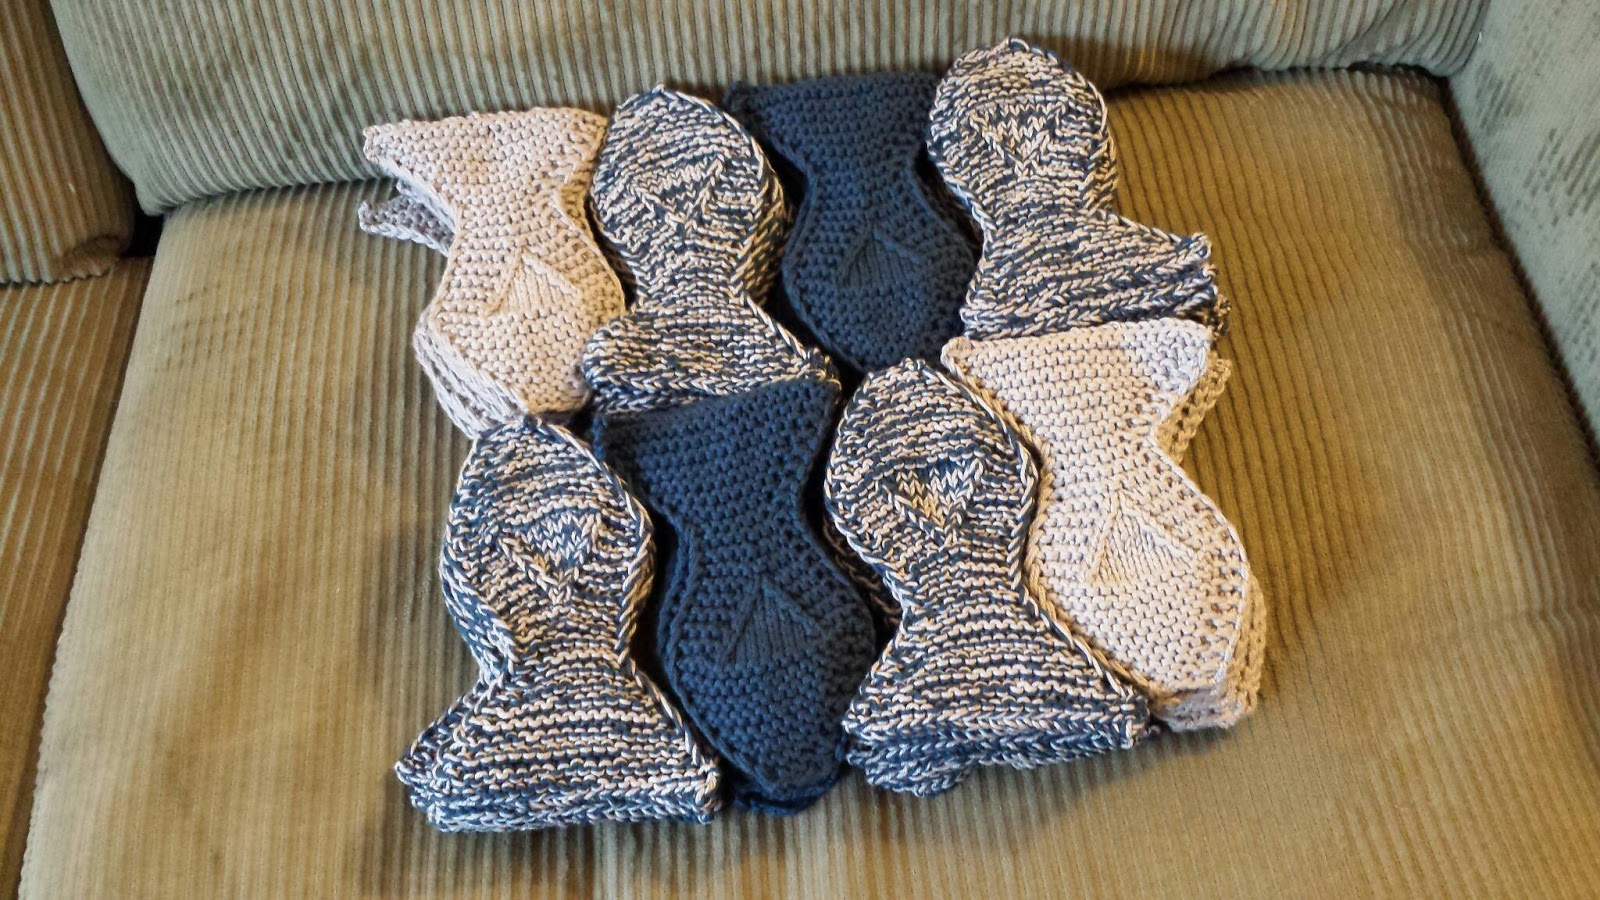 ChemKnits: Tessellated Fish Blanket